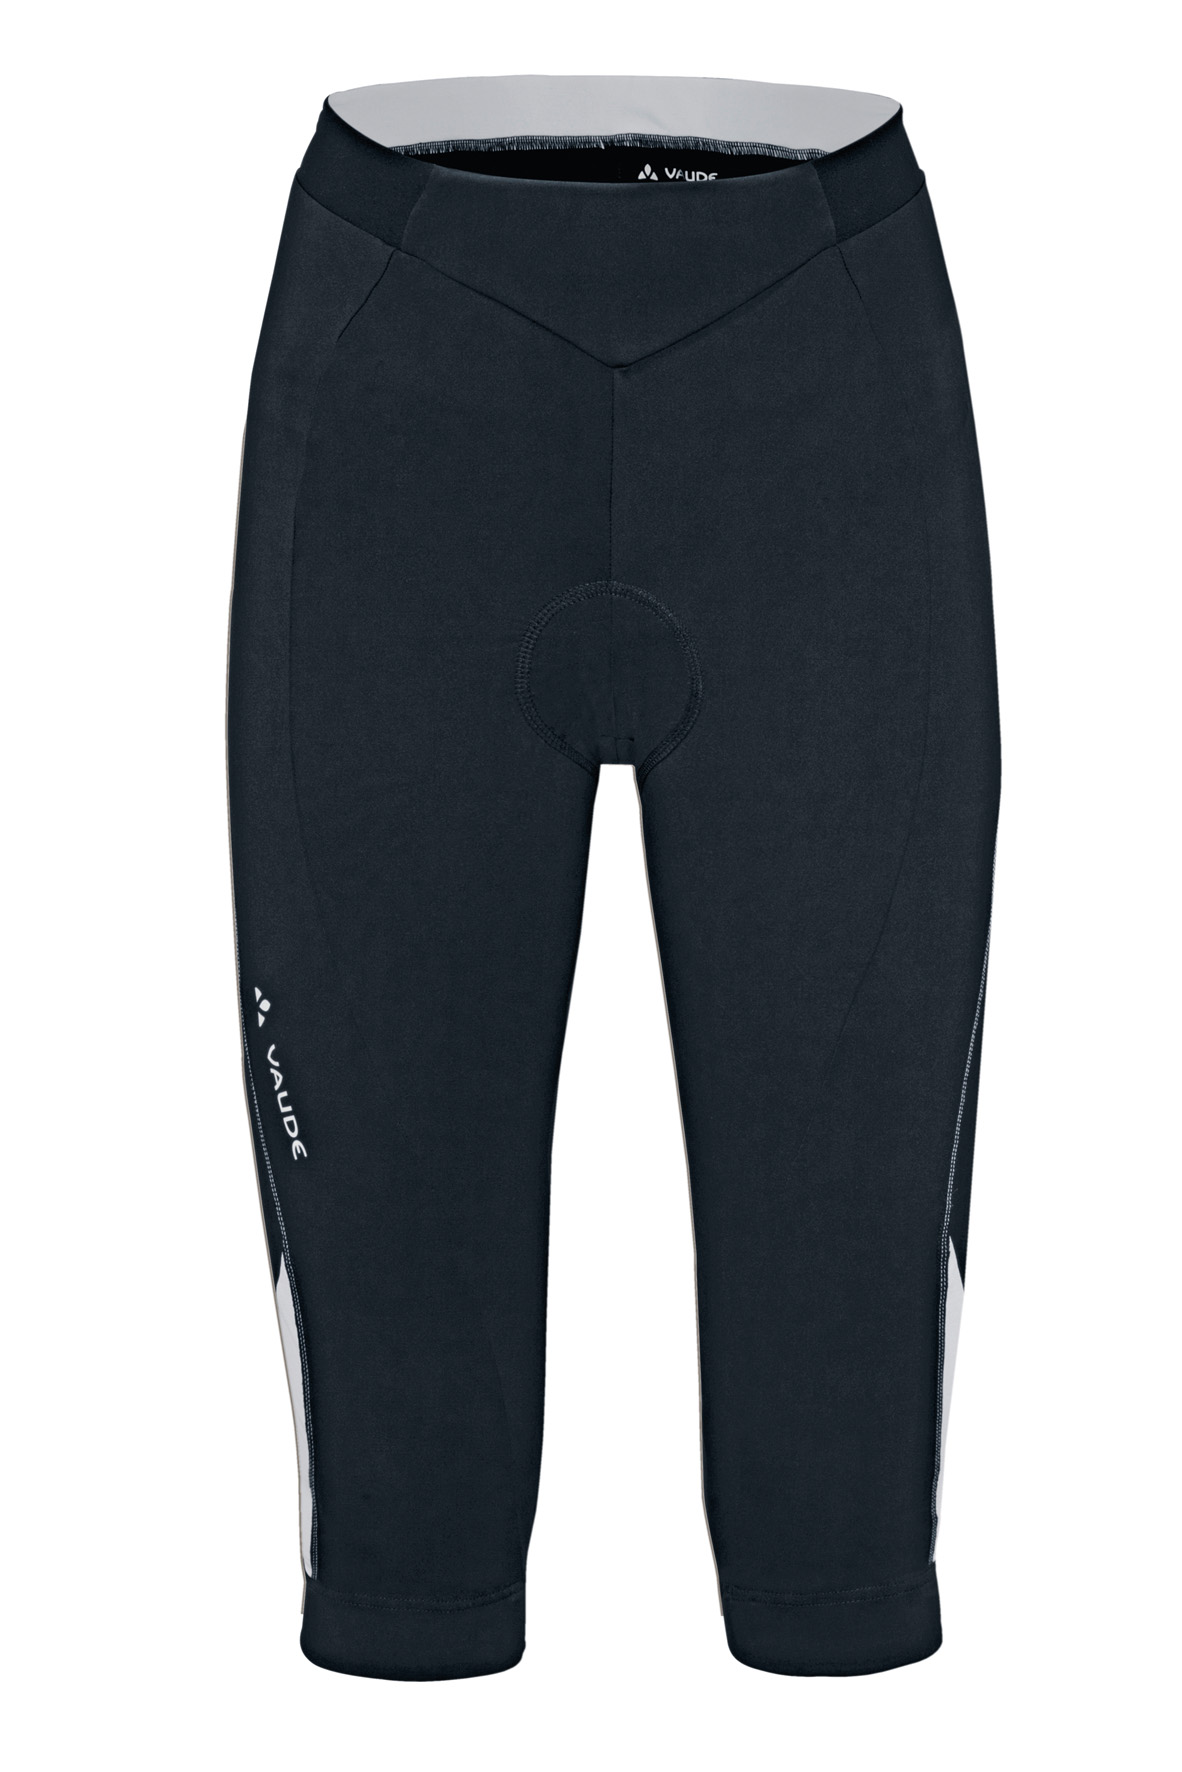 Women´s Advanced 3/4 Pants black/white Größe 40 - schneider-sports